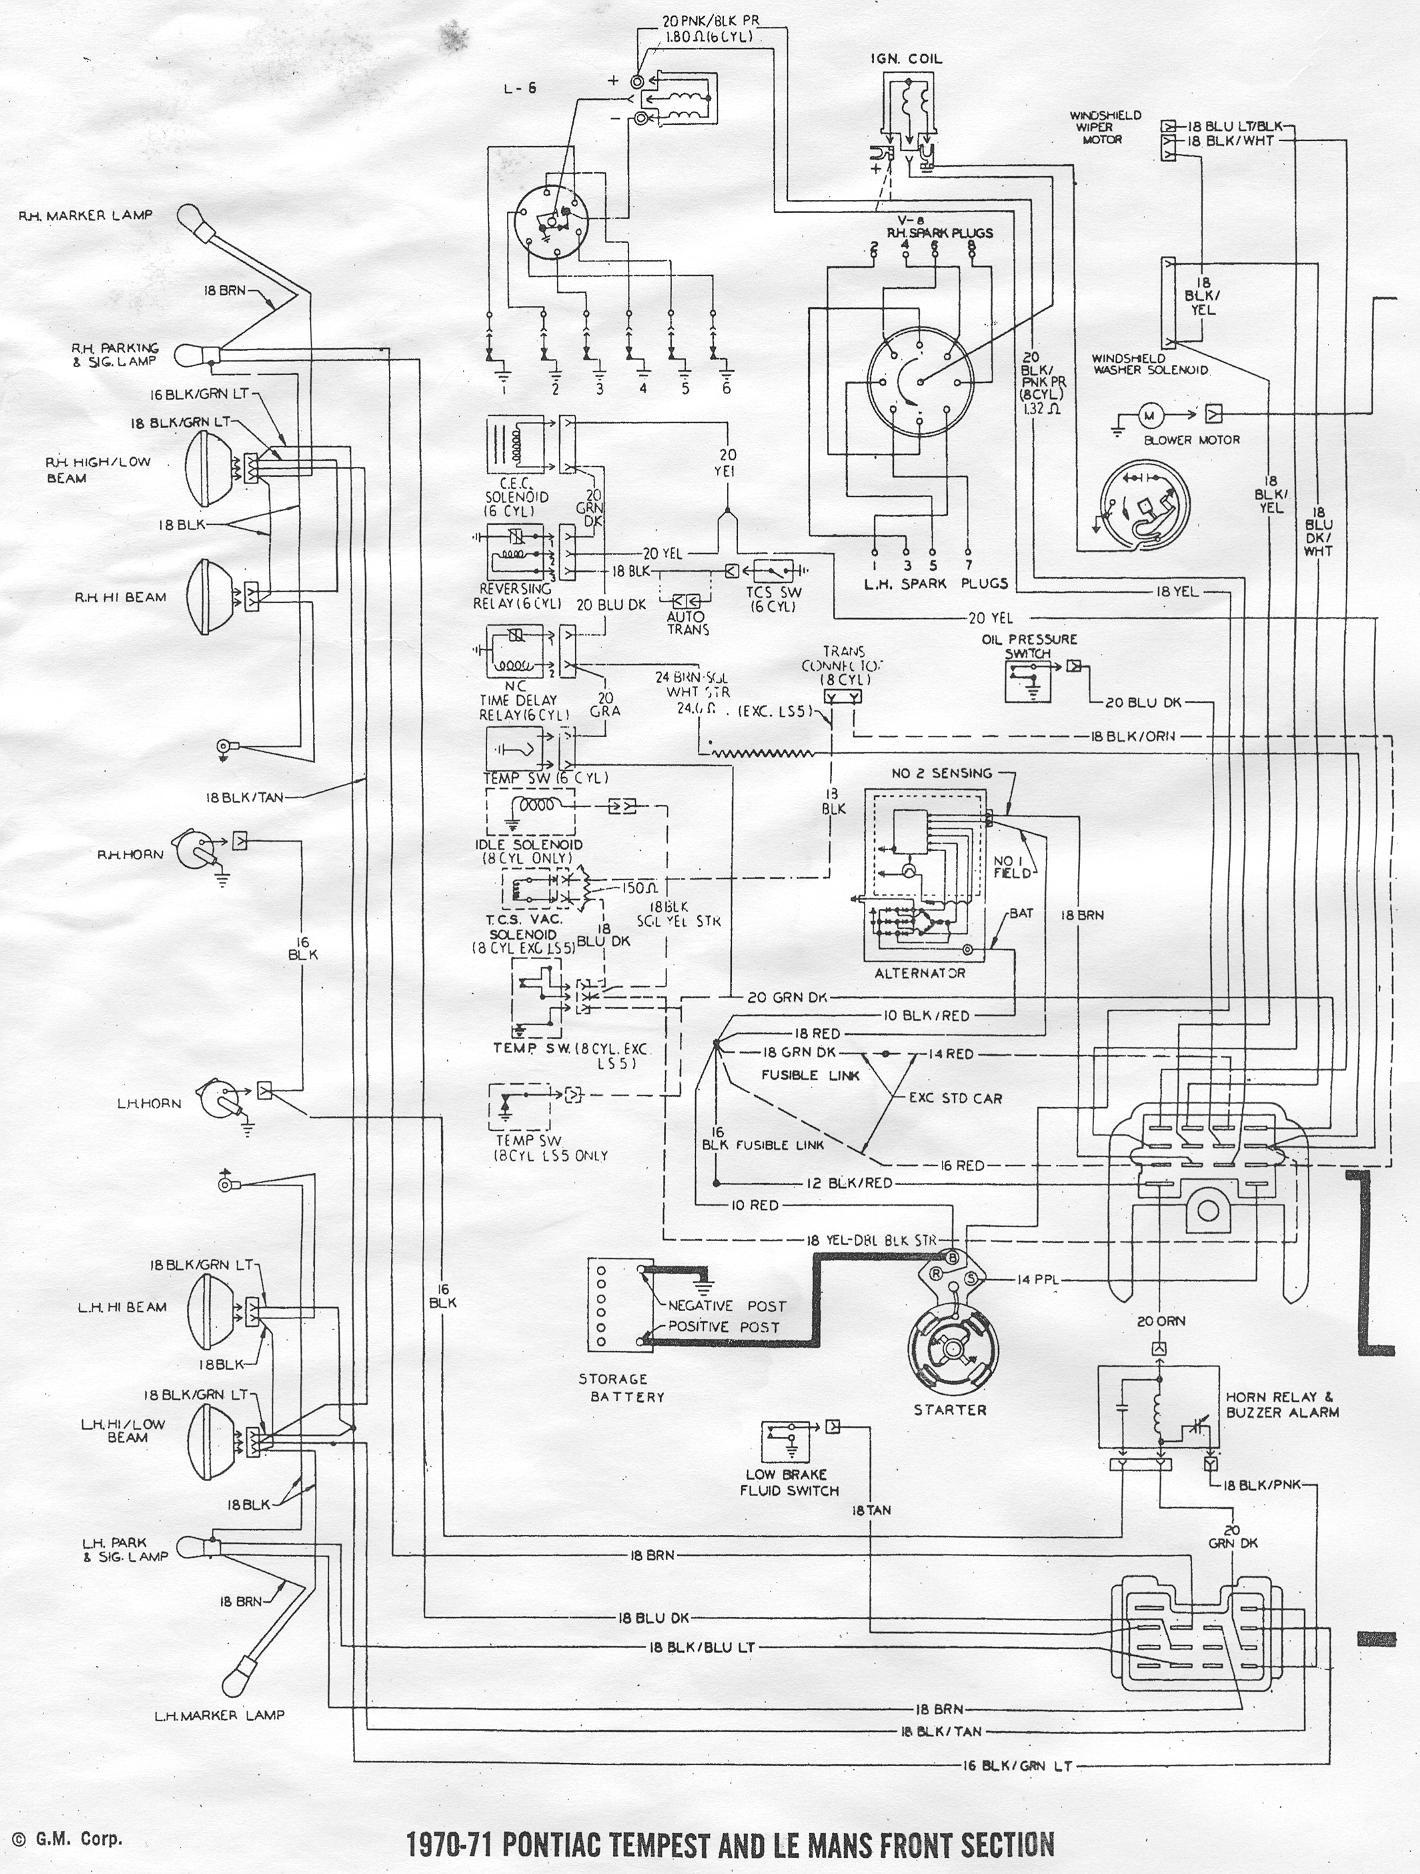 67 Gto Light Wiring Diagram Library 1992 Mitsubishi 3000gt Click Image For Larger Version Name 70 71 Page1 Scans Pontiac